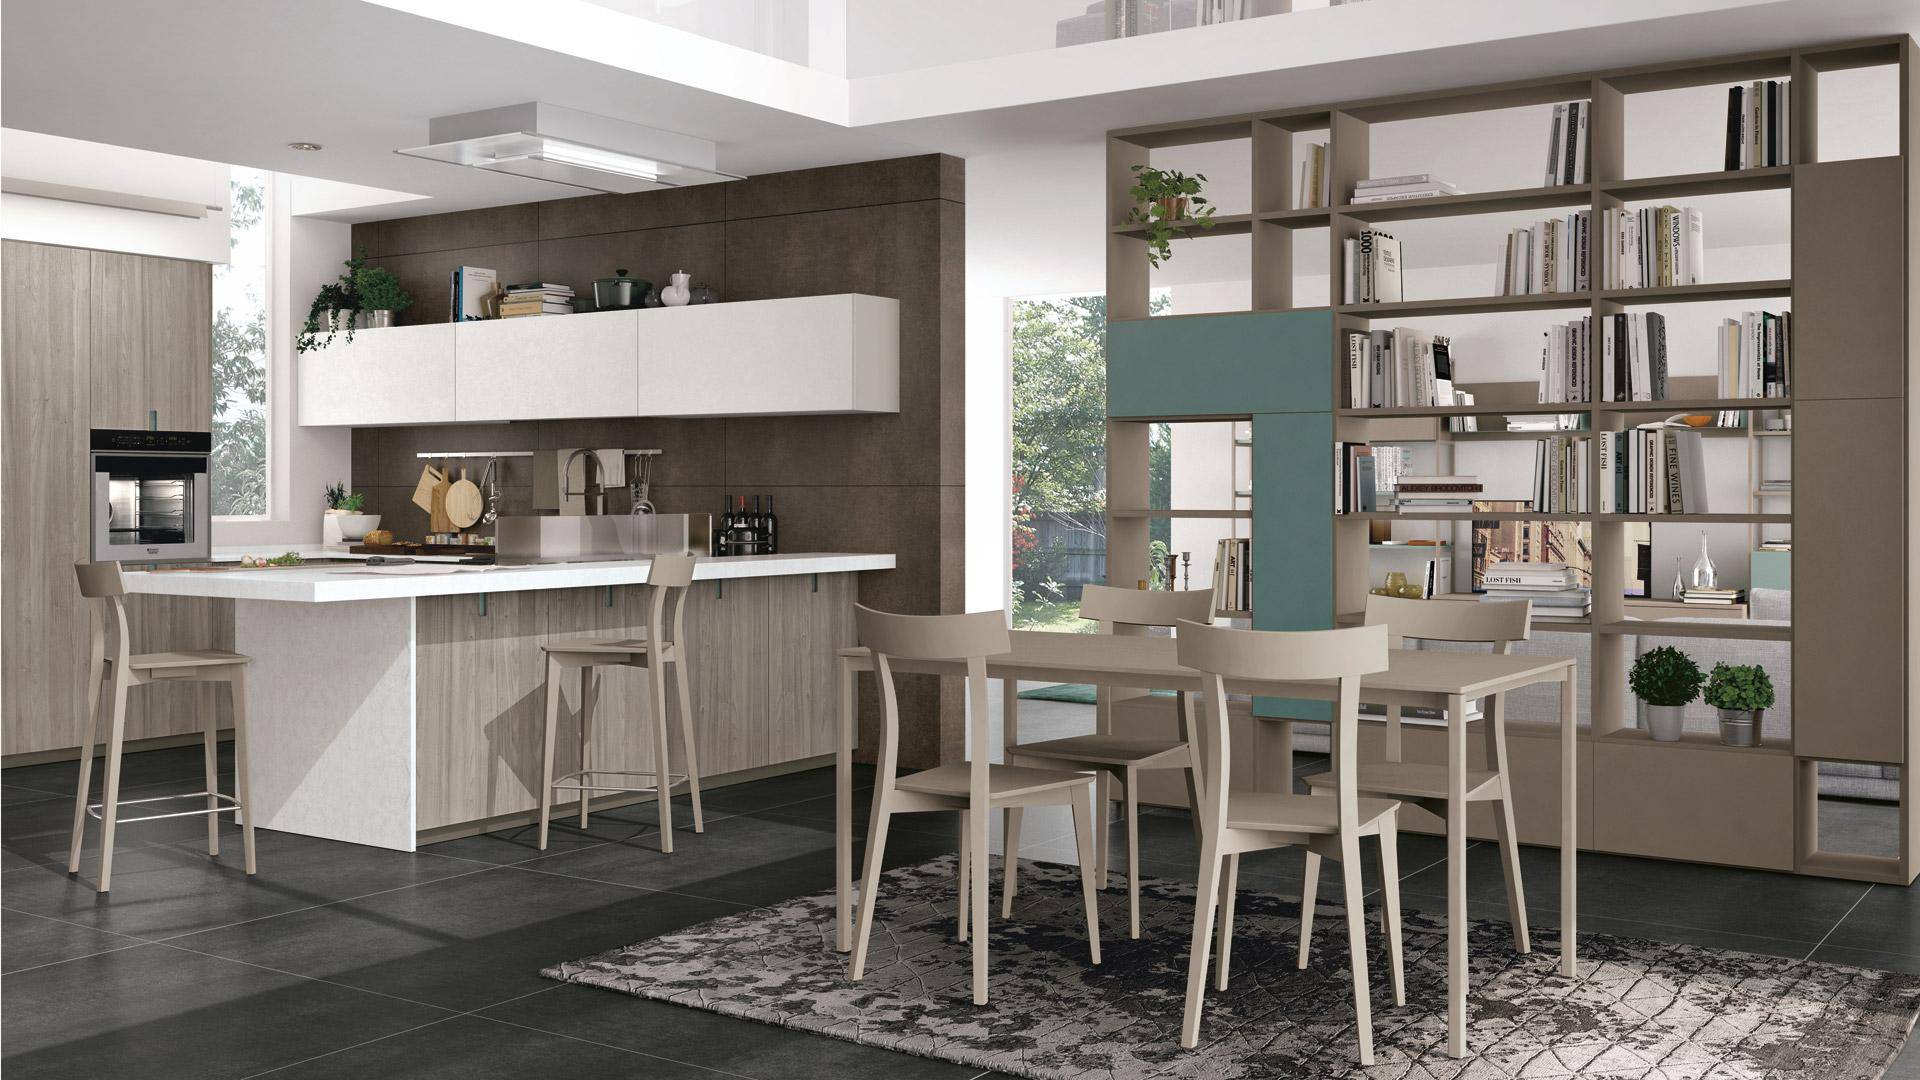 Milano cucine affordable cucina outlet creo kyra with for Sedie outlet milano